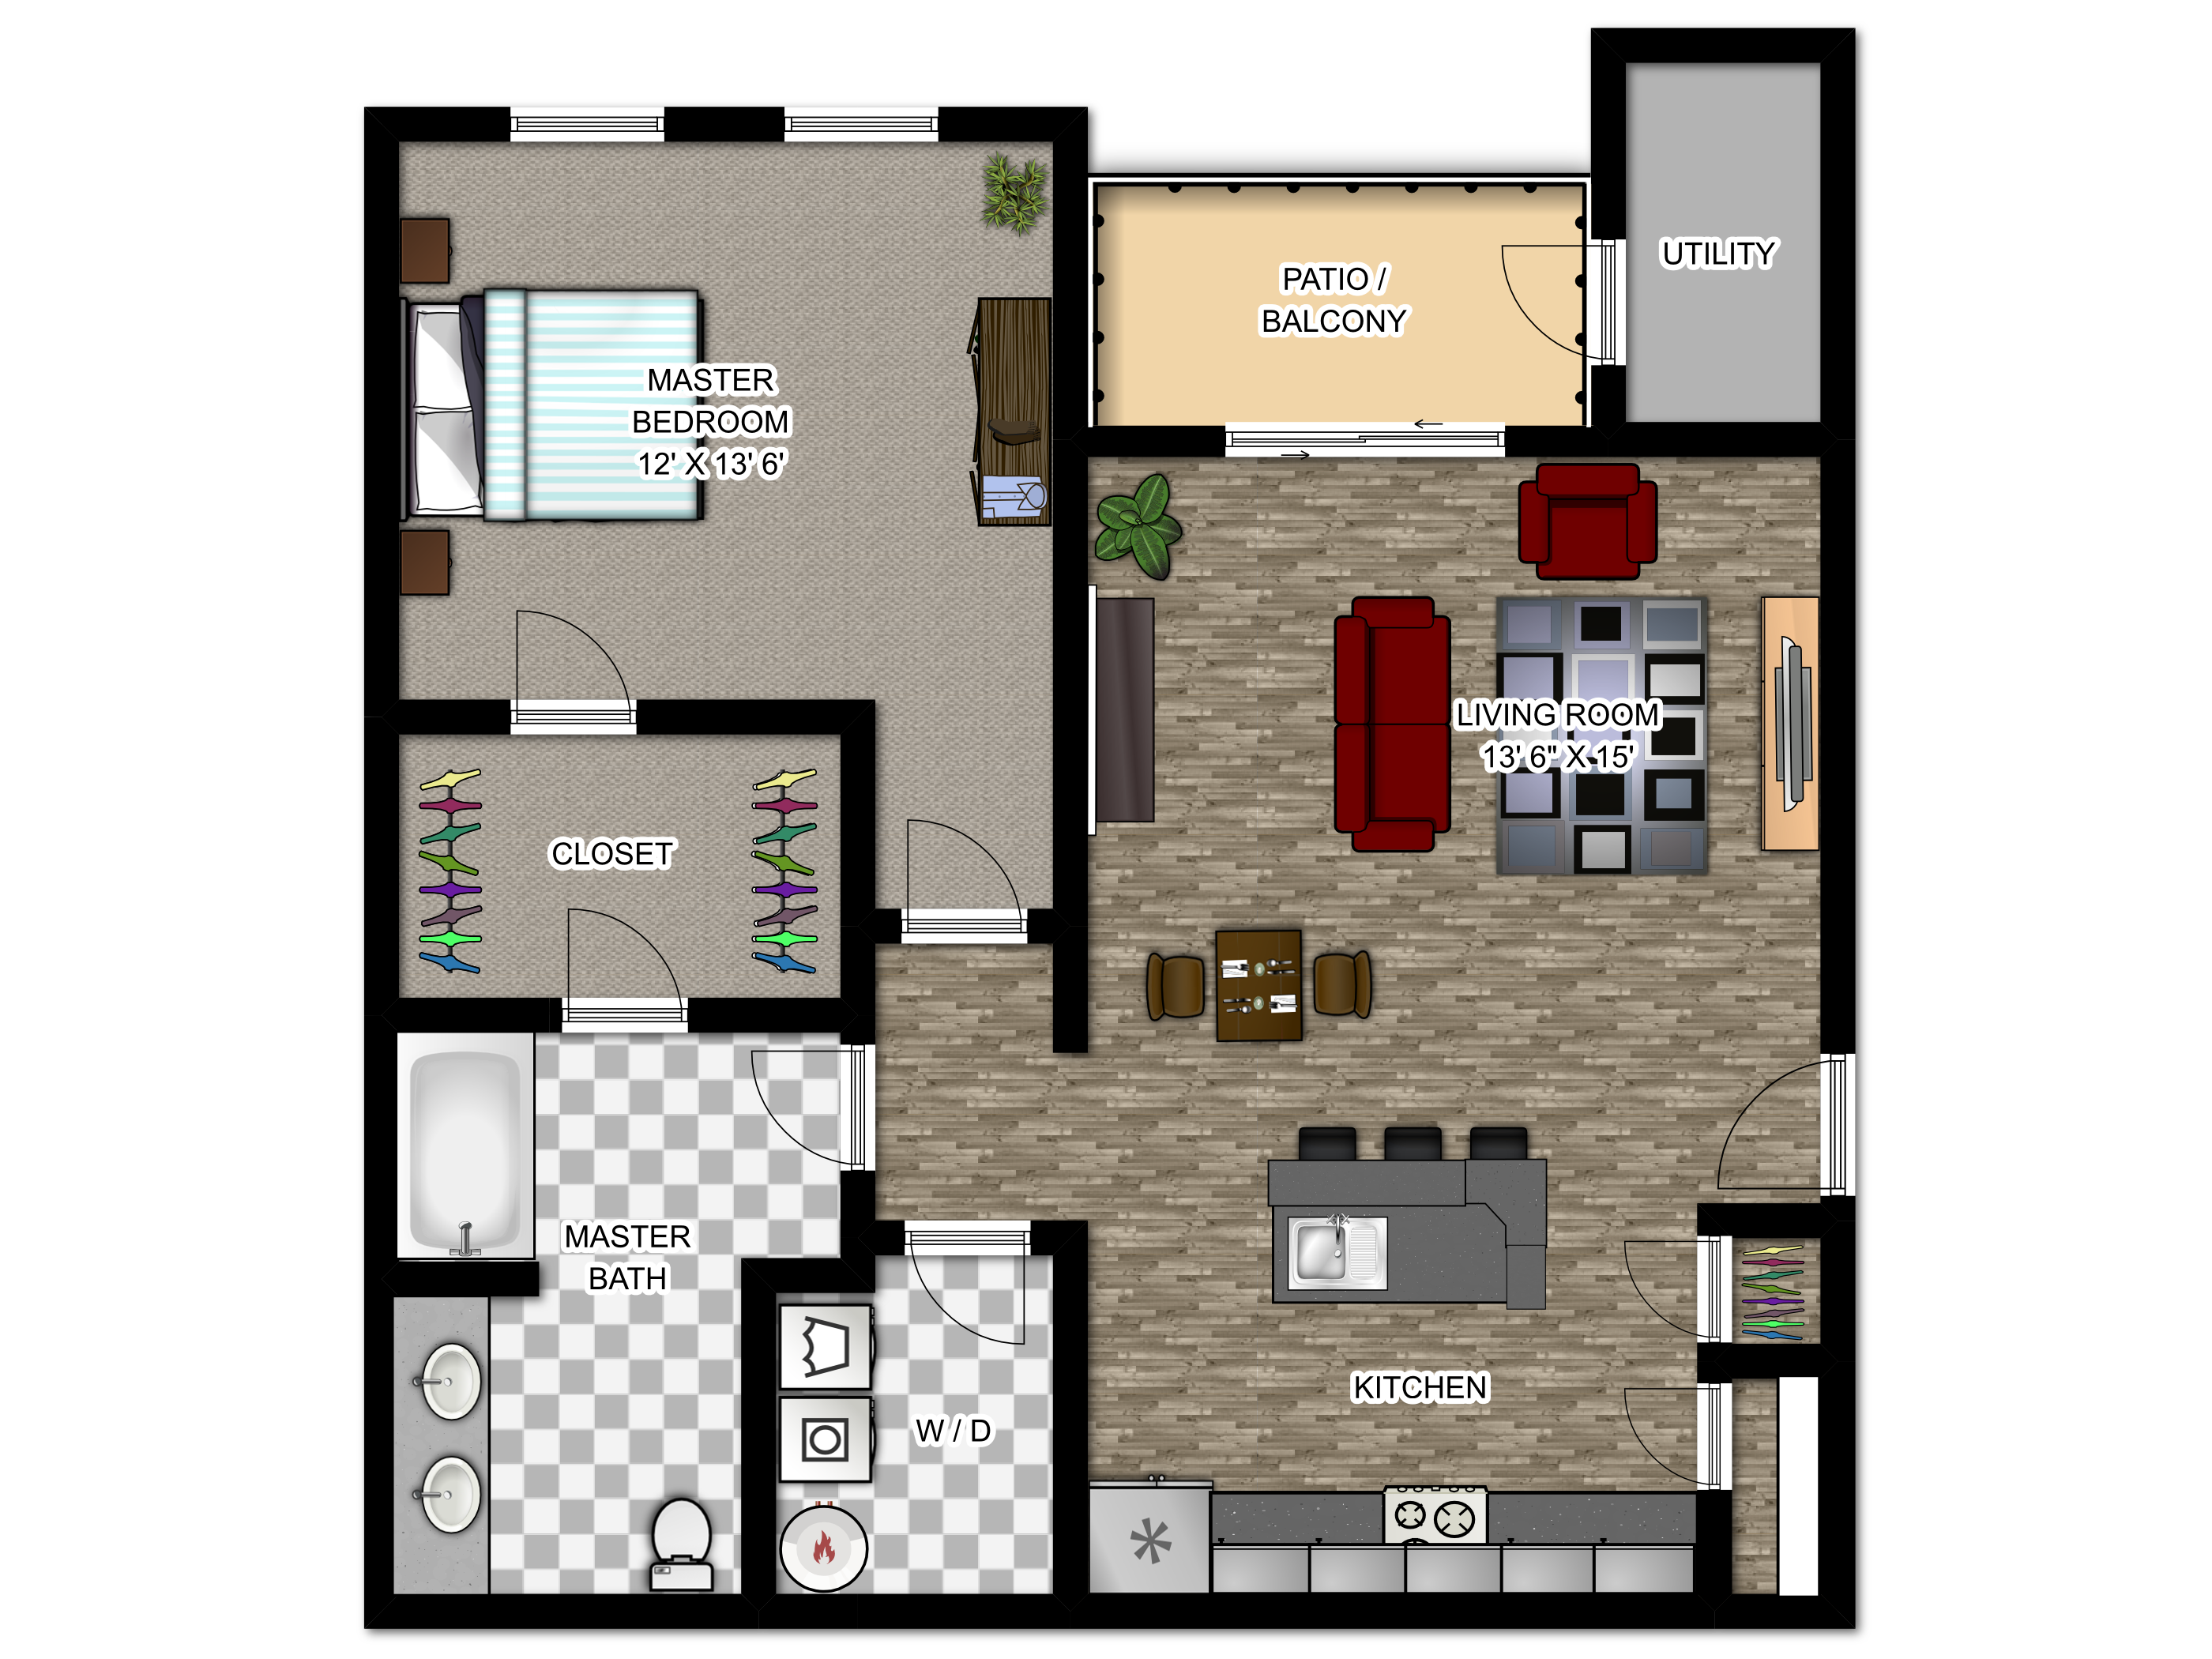 Meadowood Apartments Floor Plans - The Napa